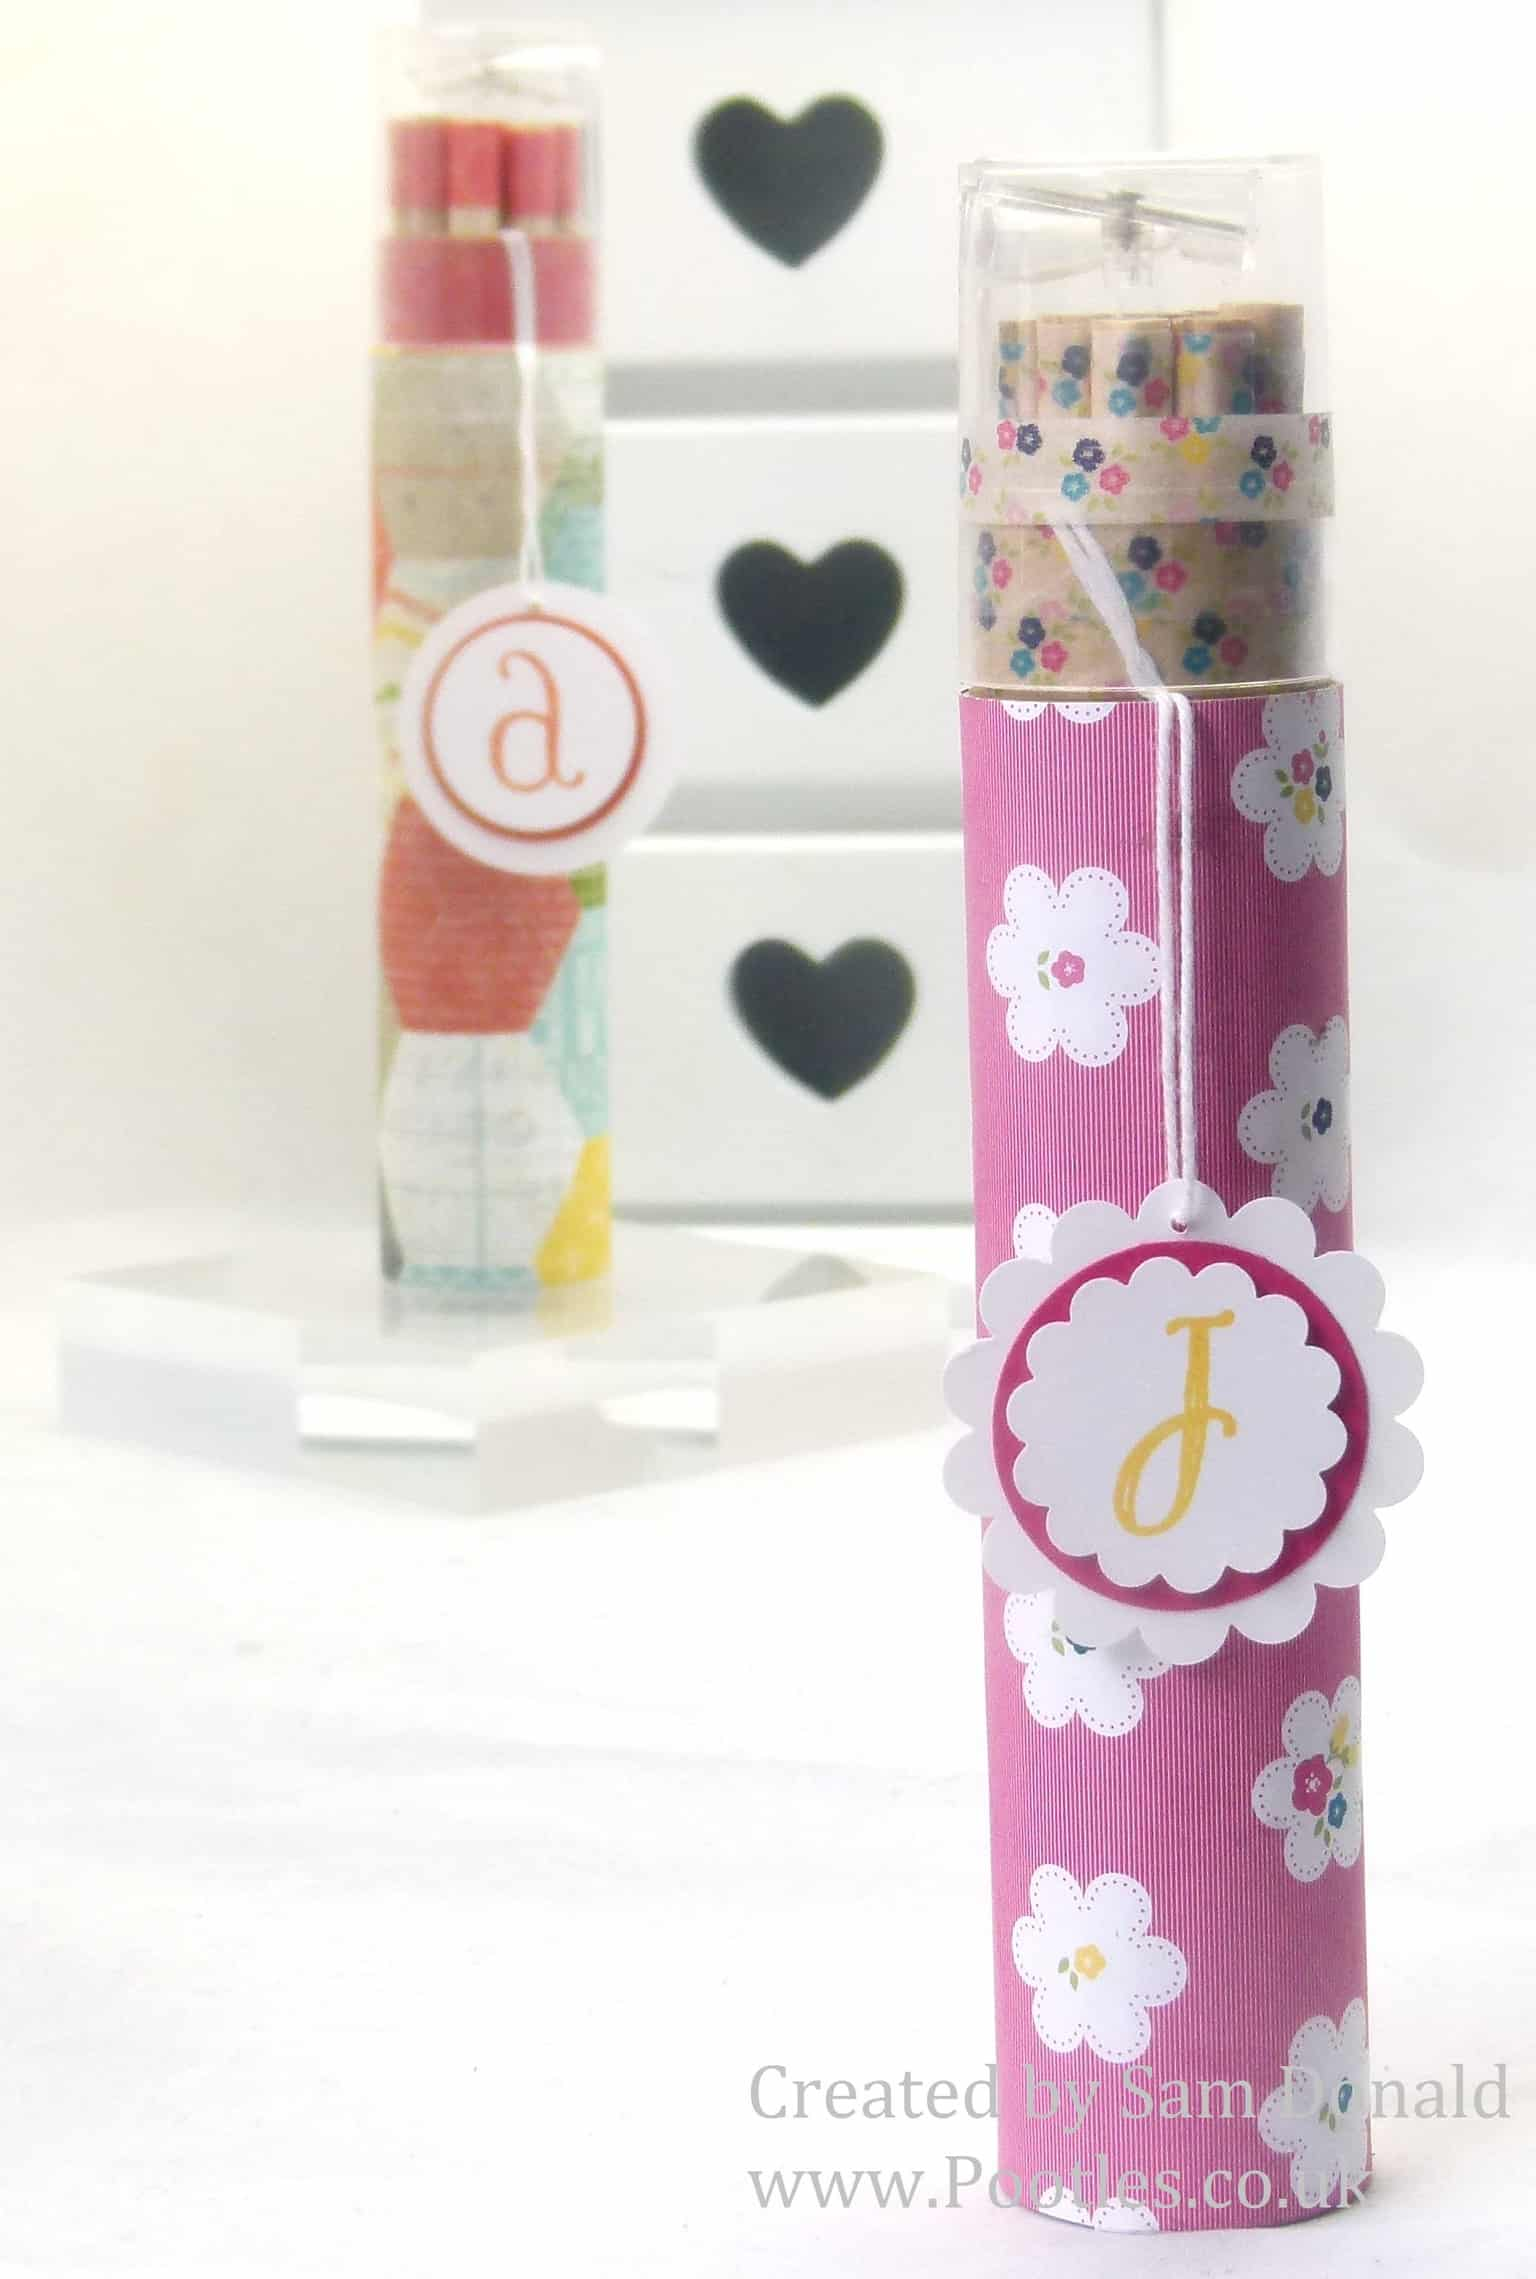 Pootles Stampin Up Gingham Garden Colouring Pencils 2 (2)